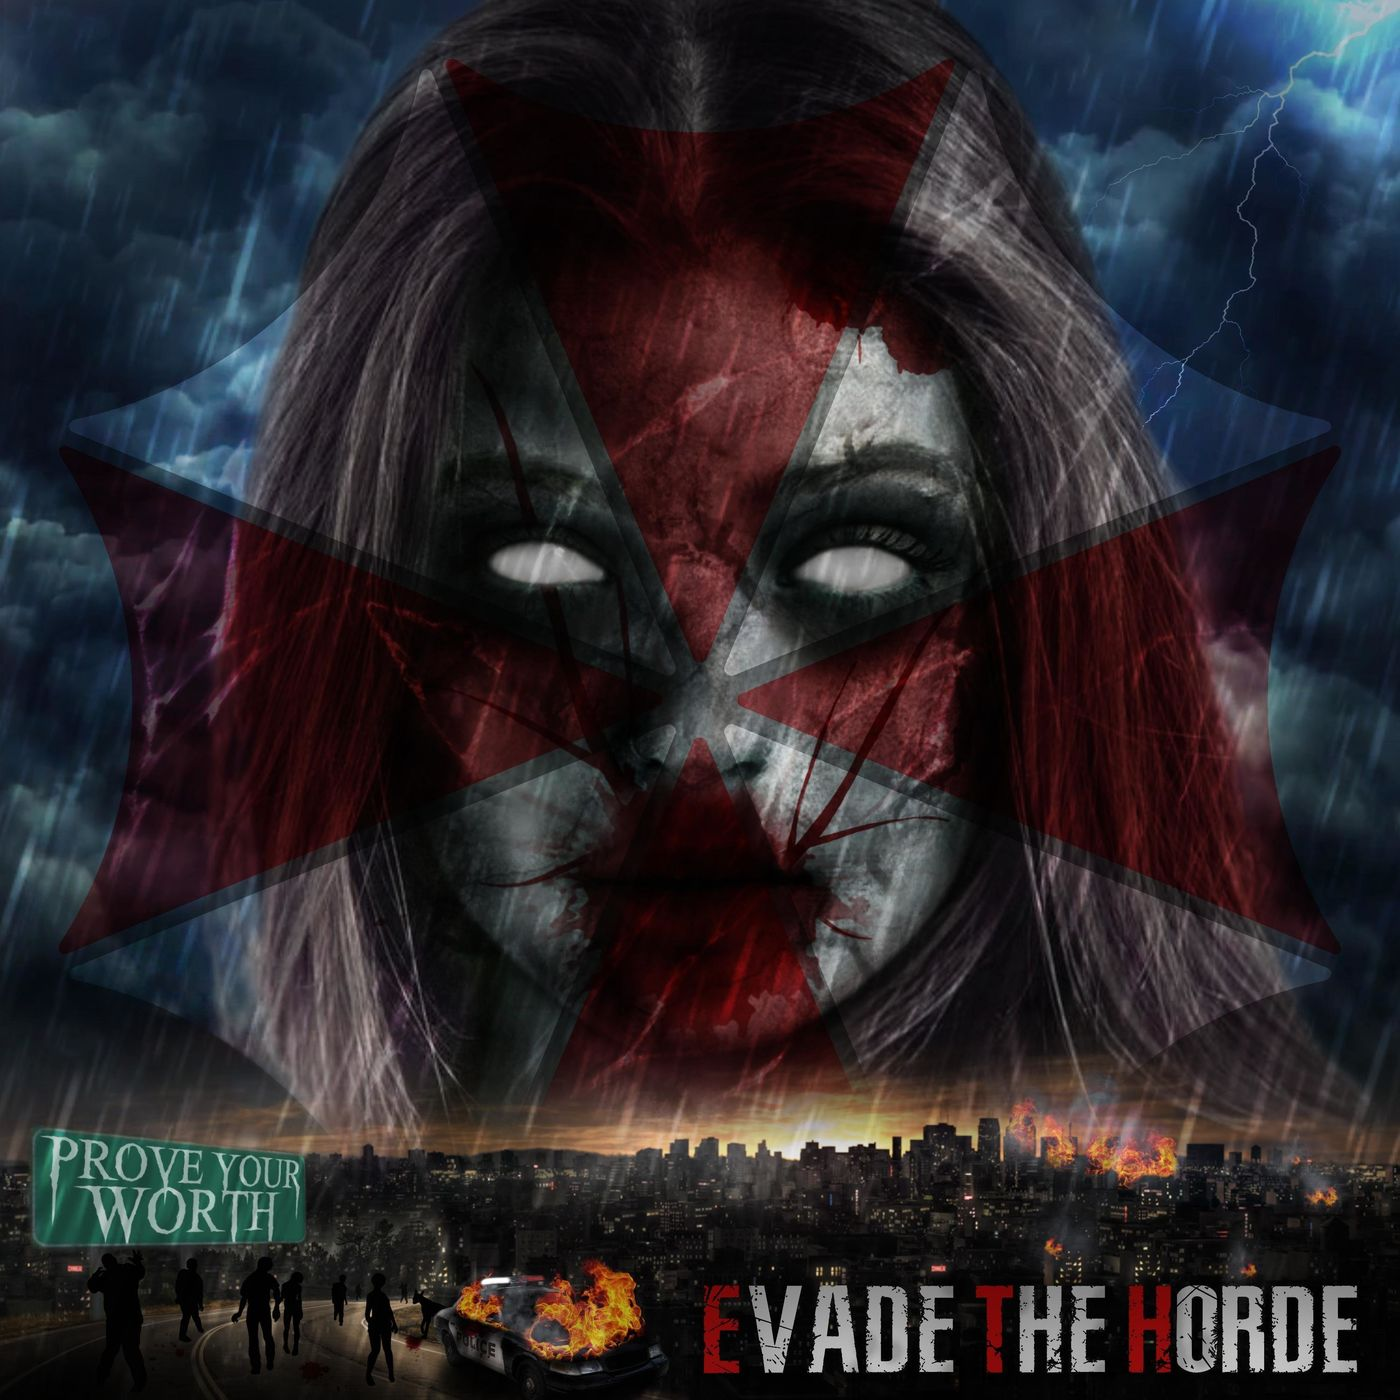 Prove Your Worth - Evade The Horde [single] (2020)